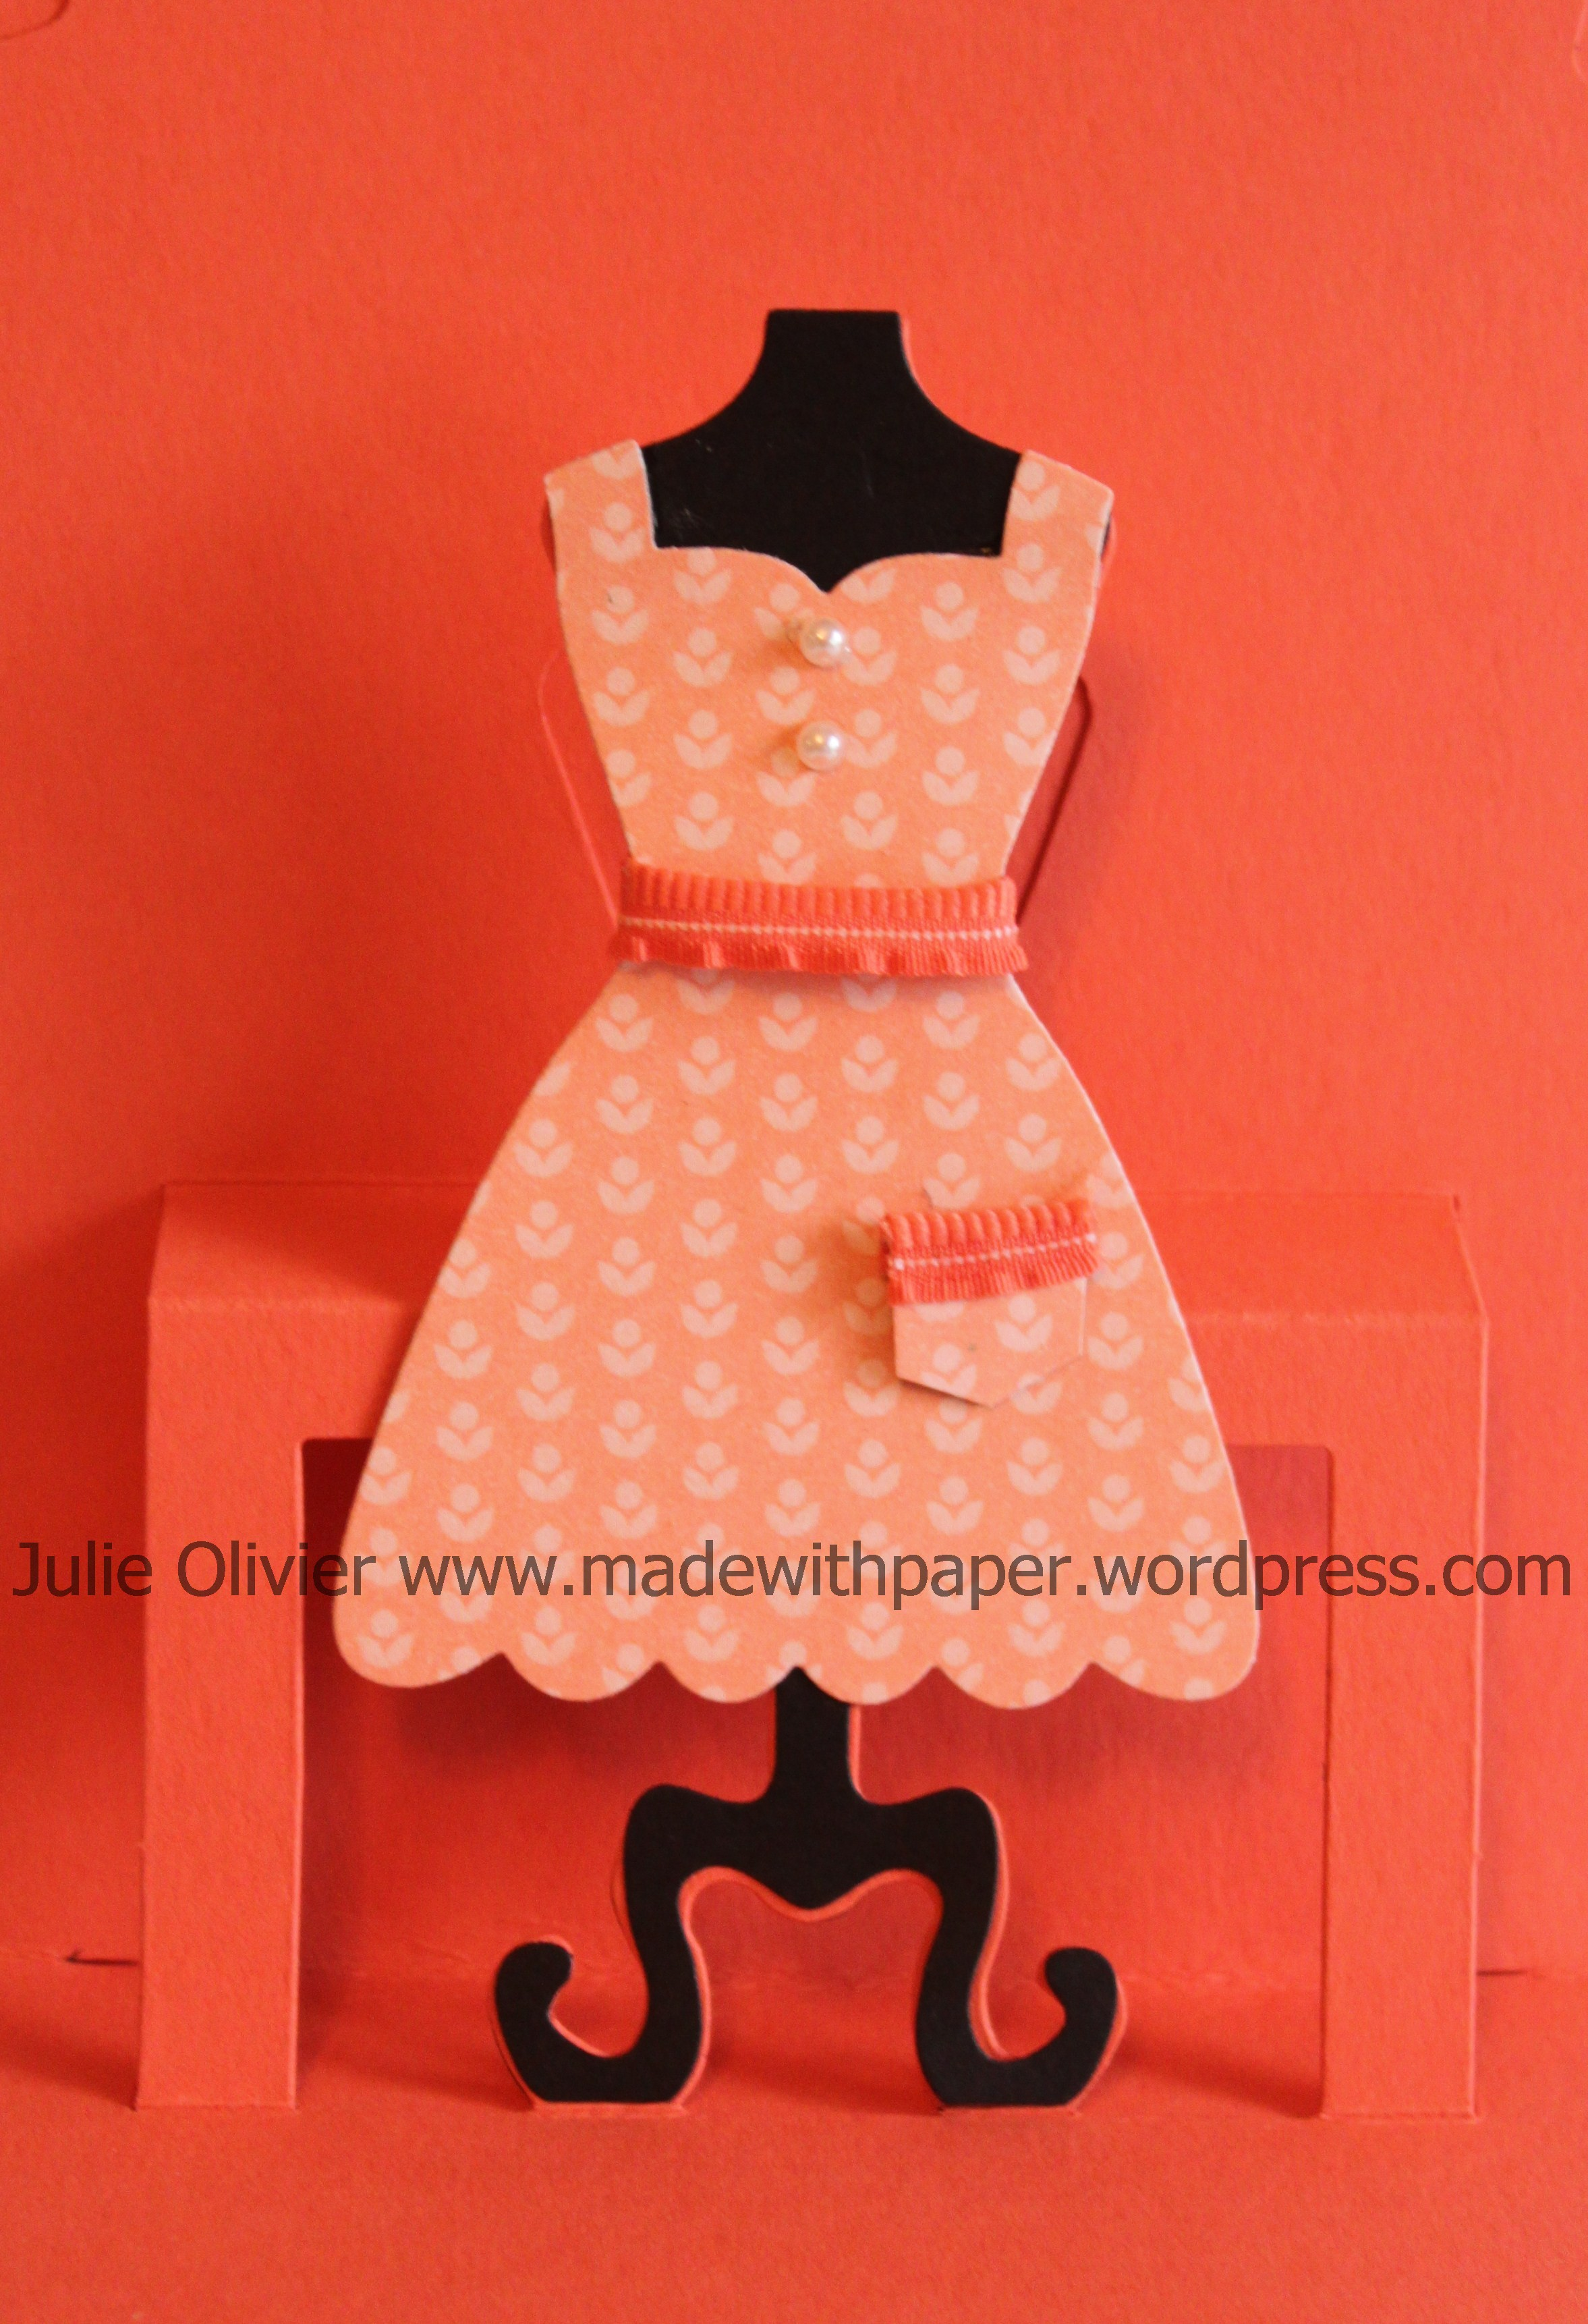 Dress Up Framelits Dies Made With Paper